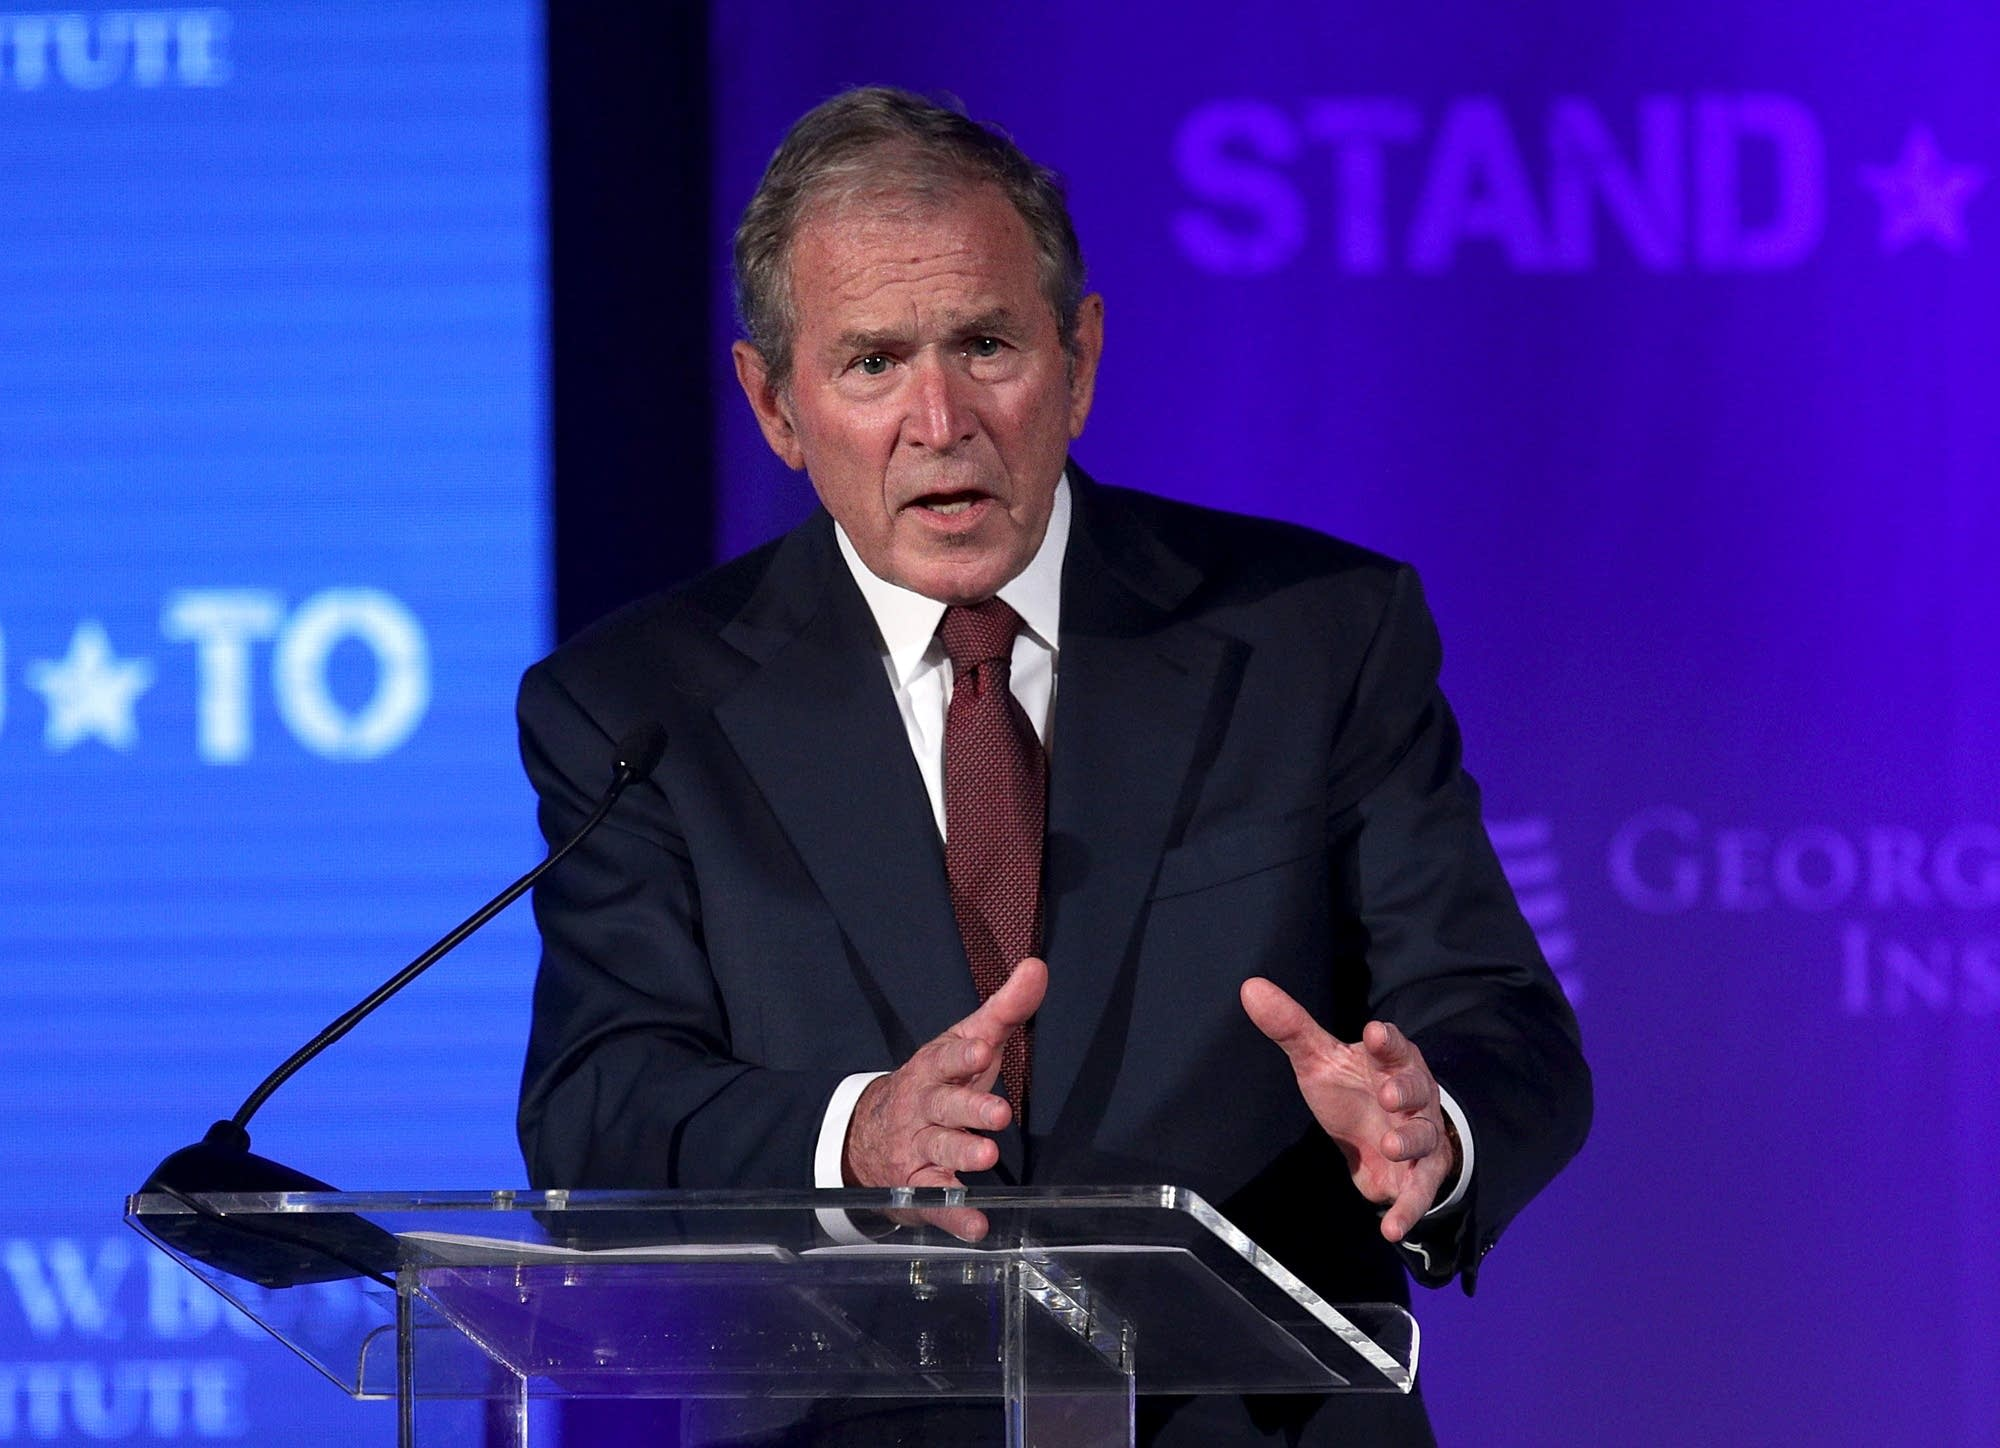 Former U.S. President George W. Bush speaks during a conference.